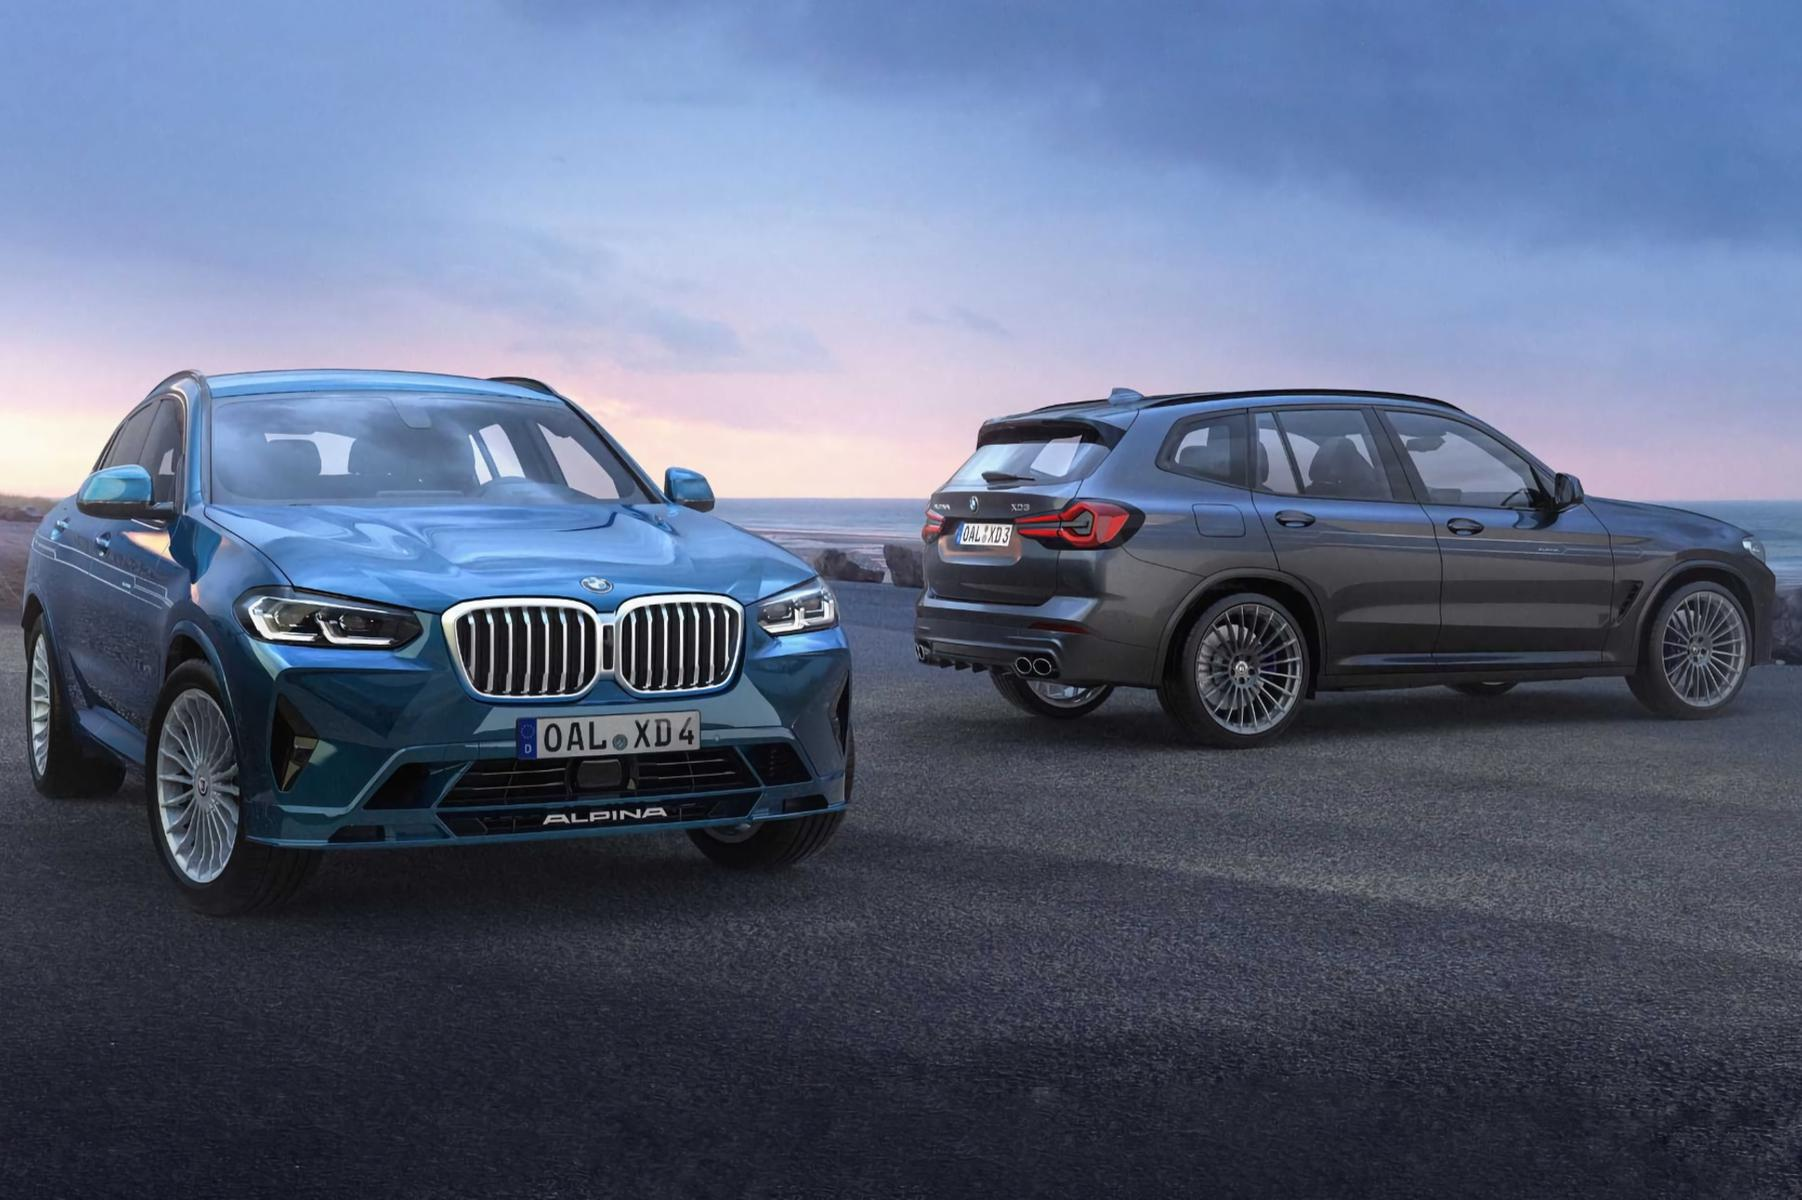 Alpina, which specializes in producing upmarket BMW modifications, conducted a survey among its customer base and came to the conclusion that most of them aren't interested in electric cars.